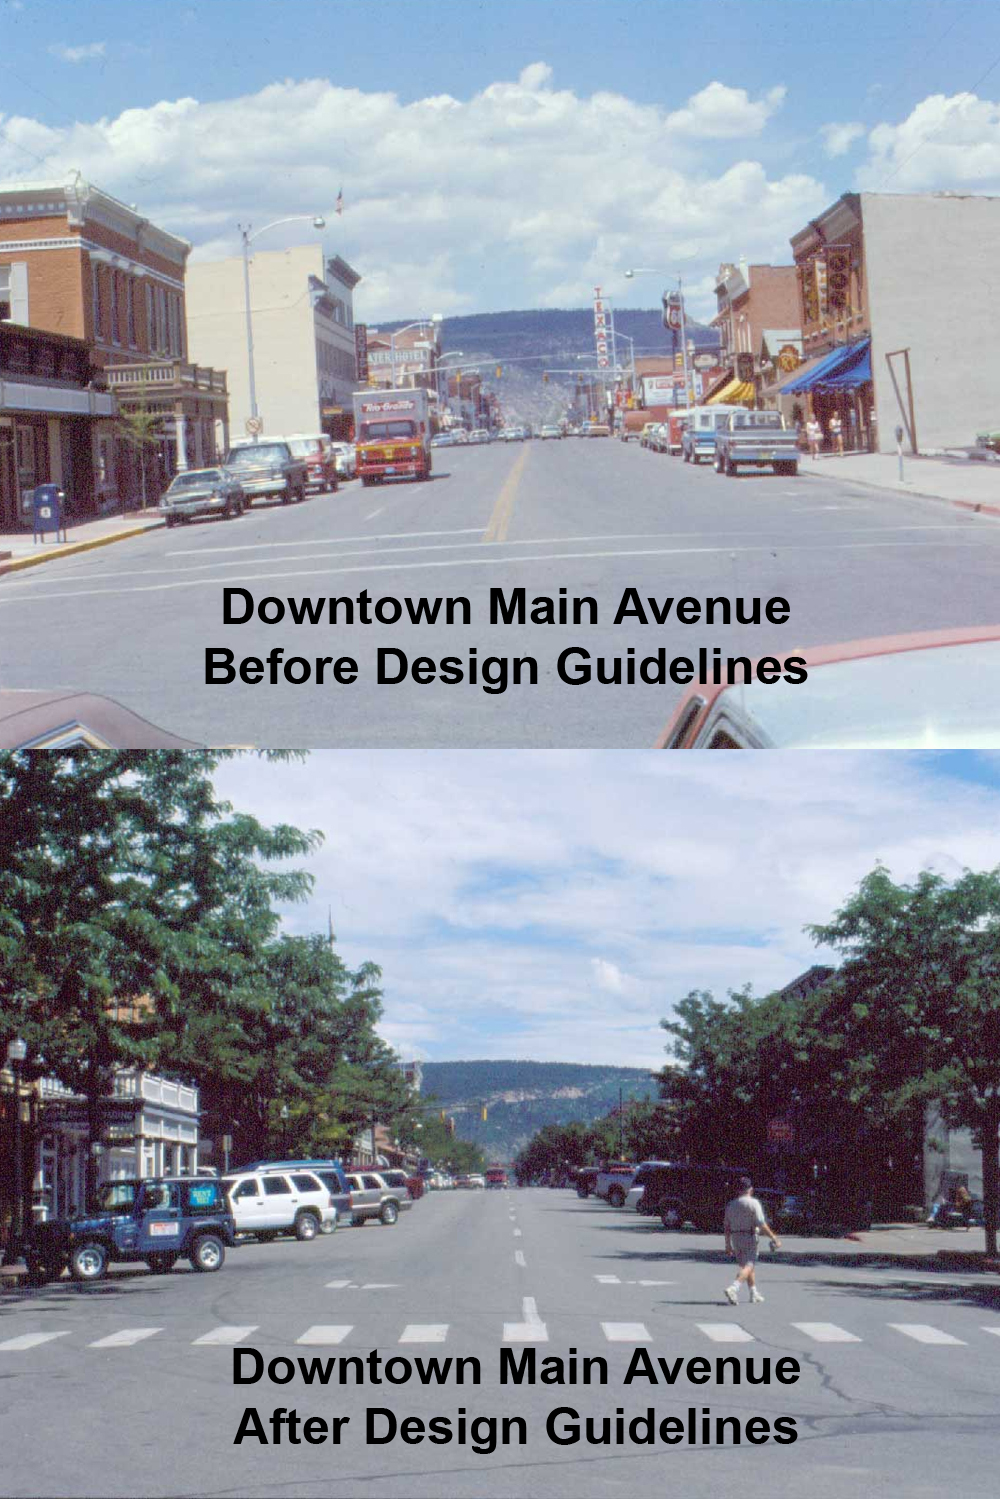 Downtown Main Avenue Before Design Guidelines and After Design Guidelines